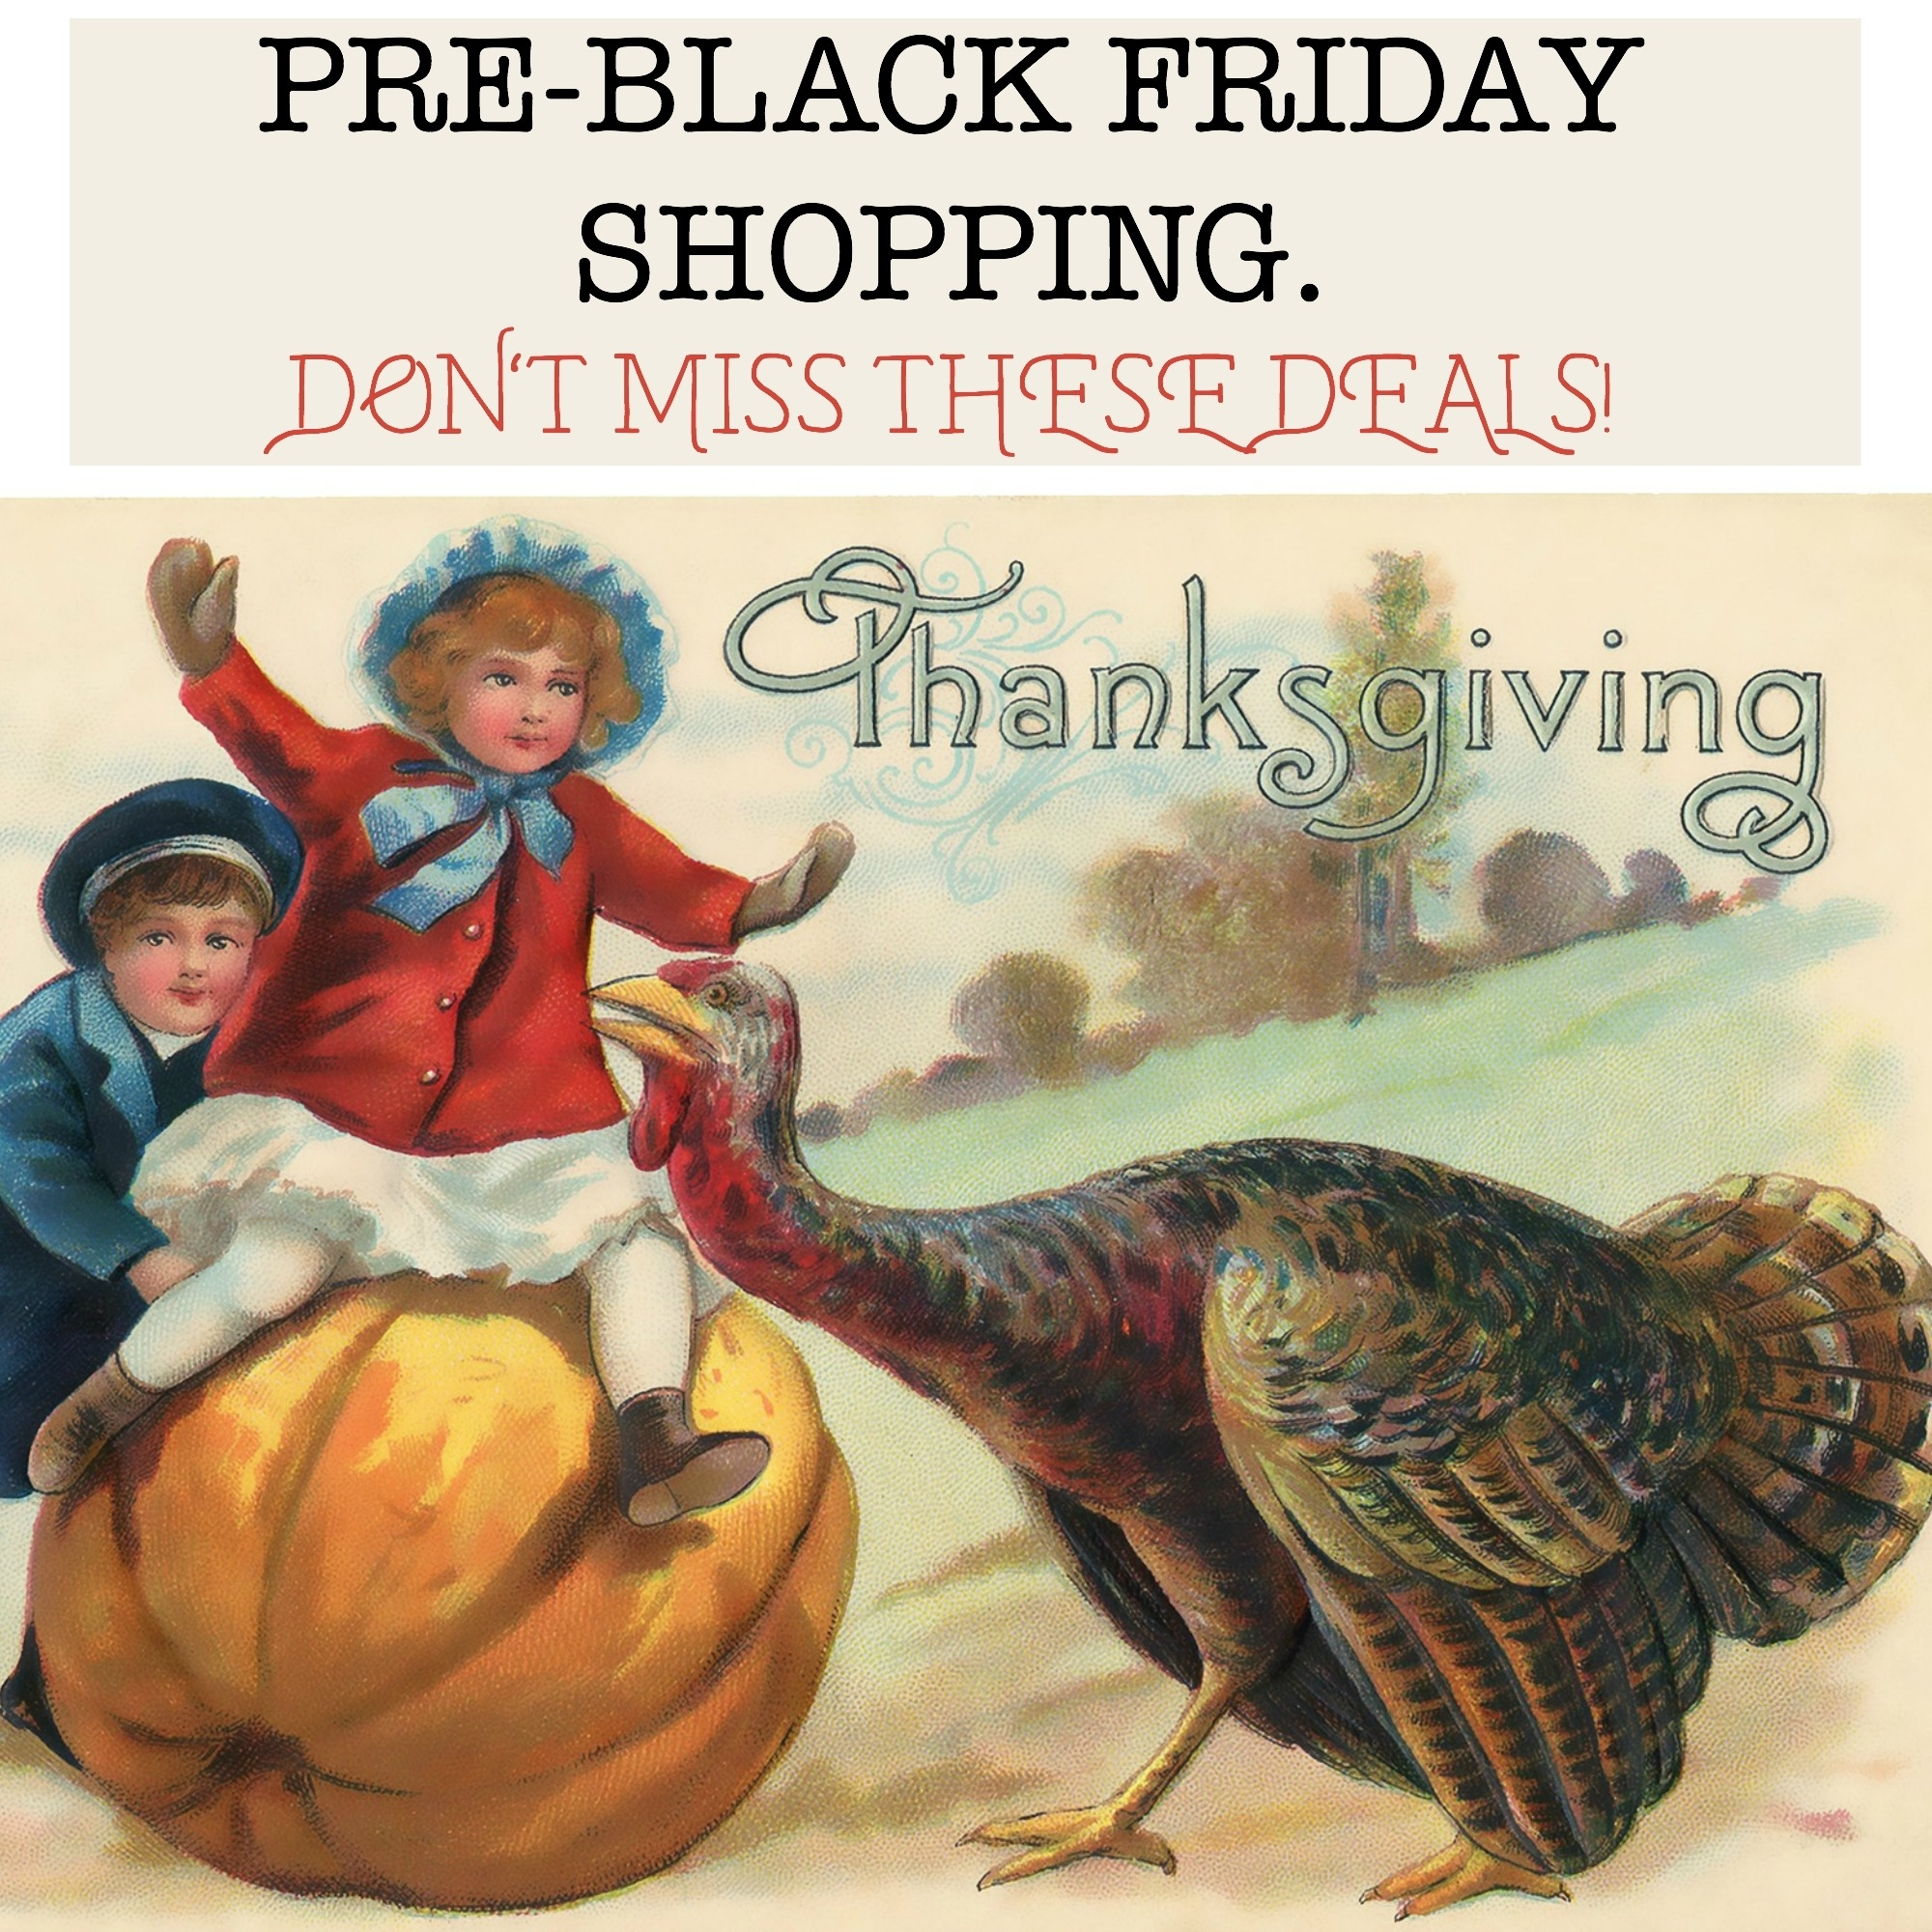 Pre-Black Friday shopping. Don't miss these deals!